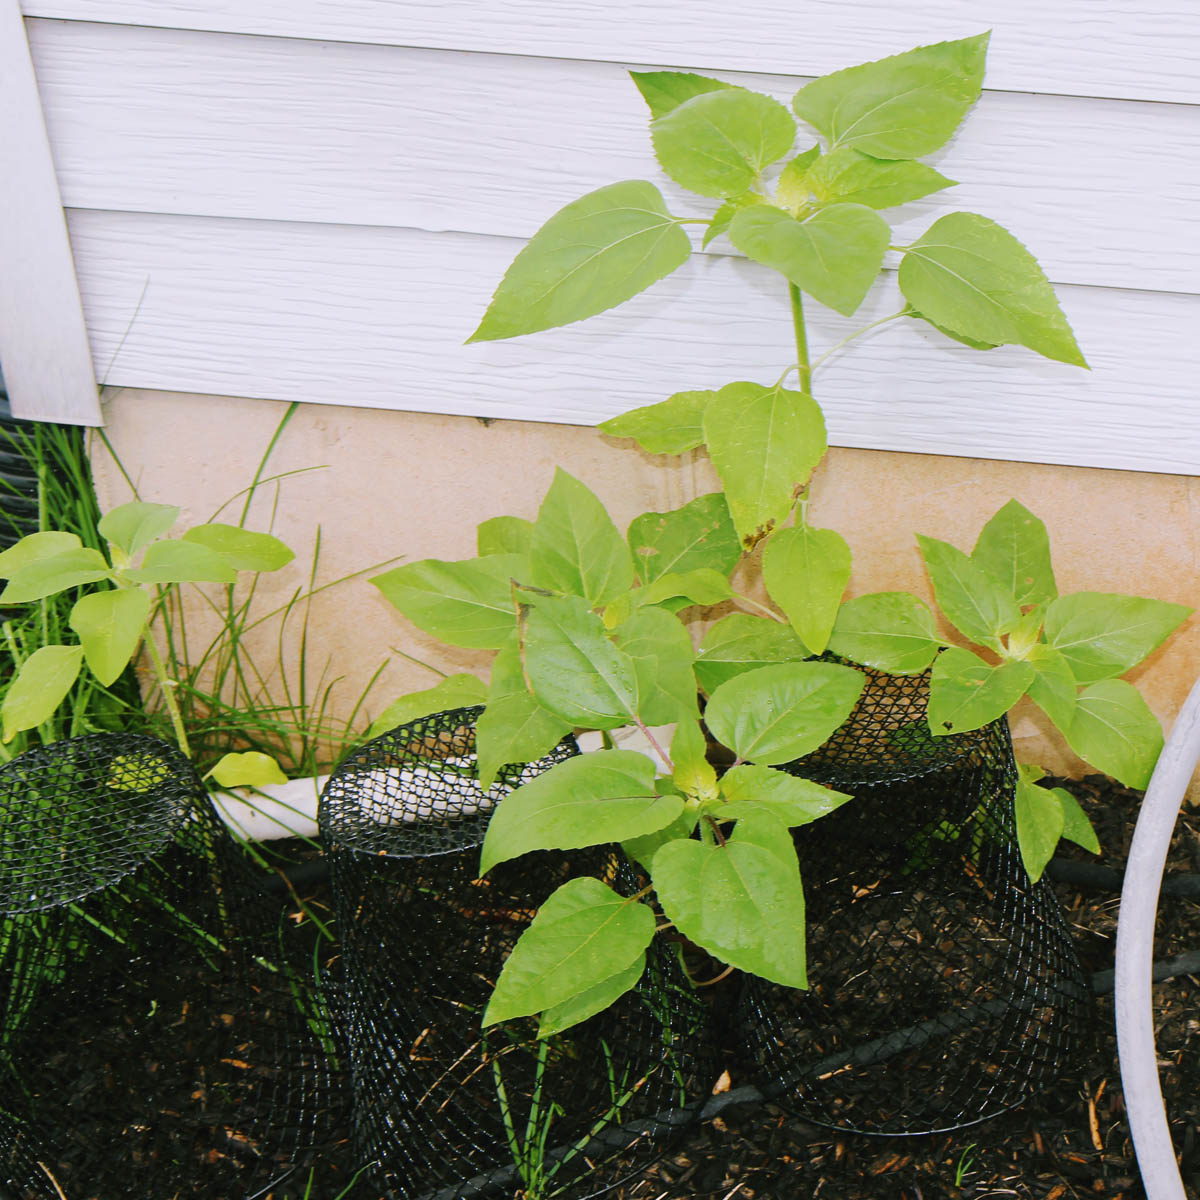 Sunflower leaves - foliage on a young sunflower plant